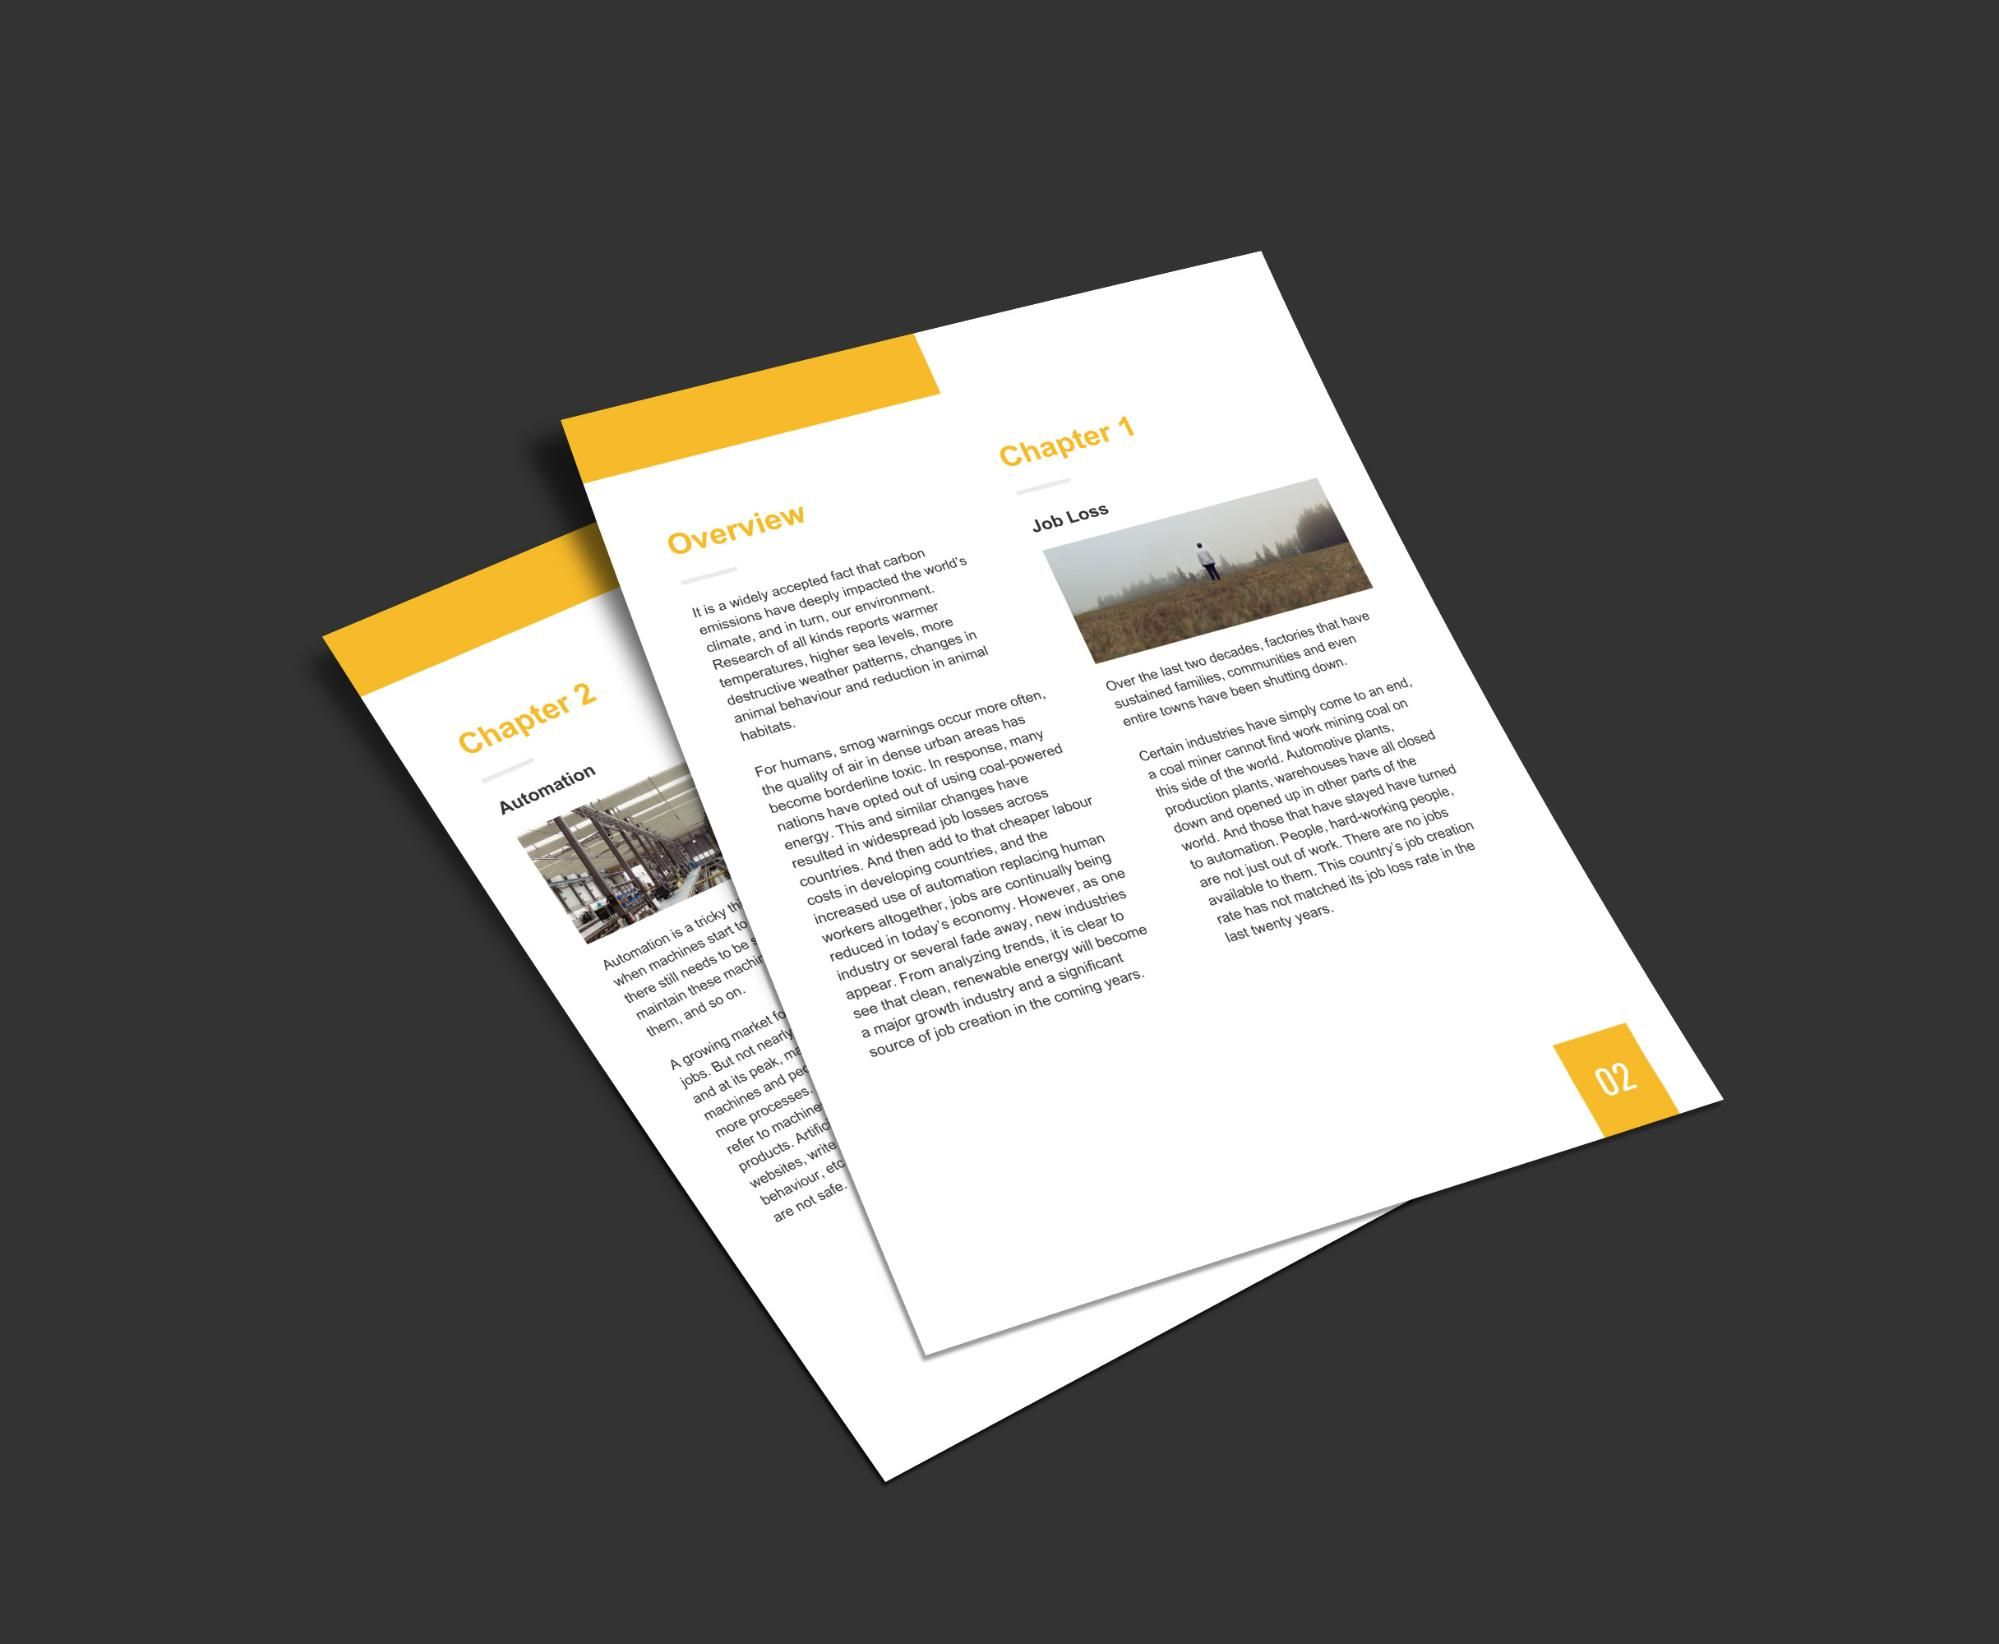 20 White Paper Examples Design Guide Templates White Paper Paper Design Design Template